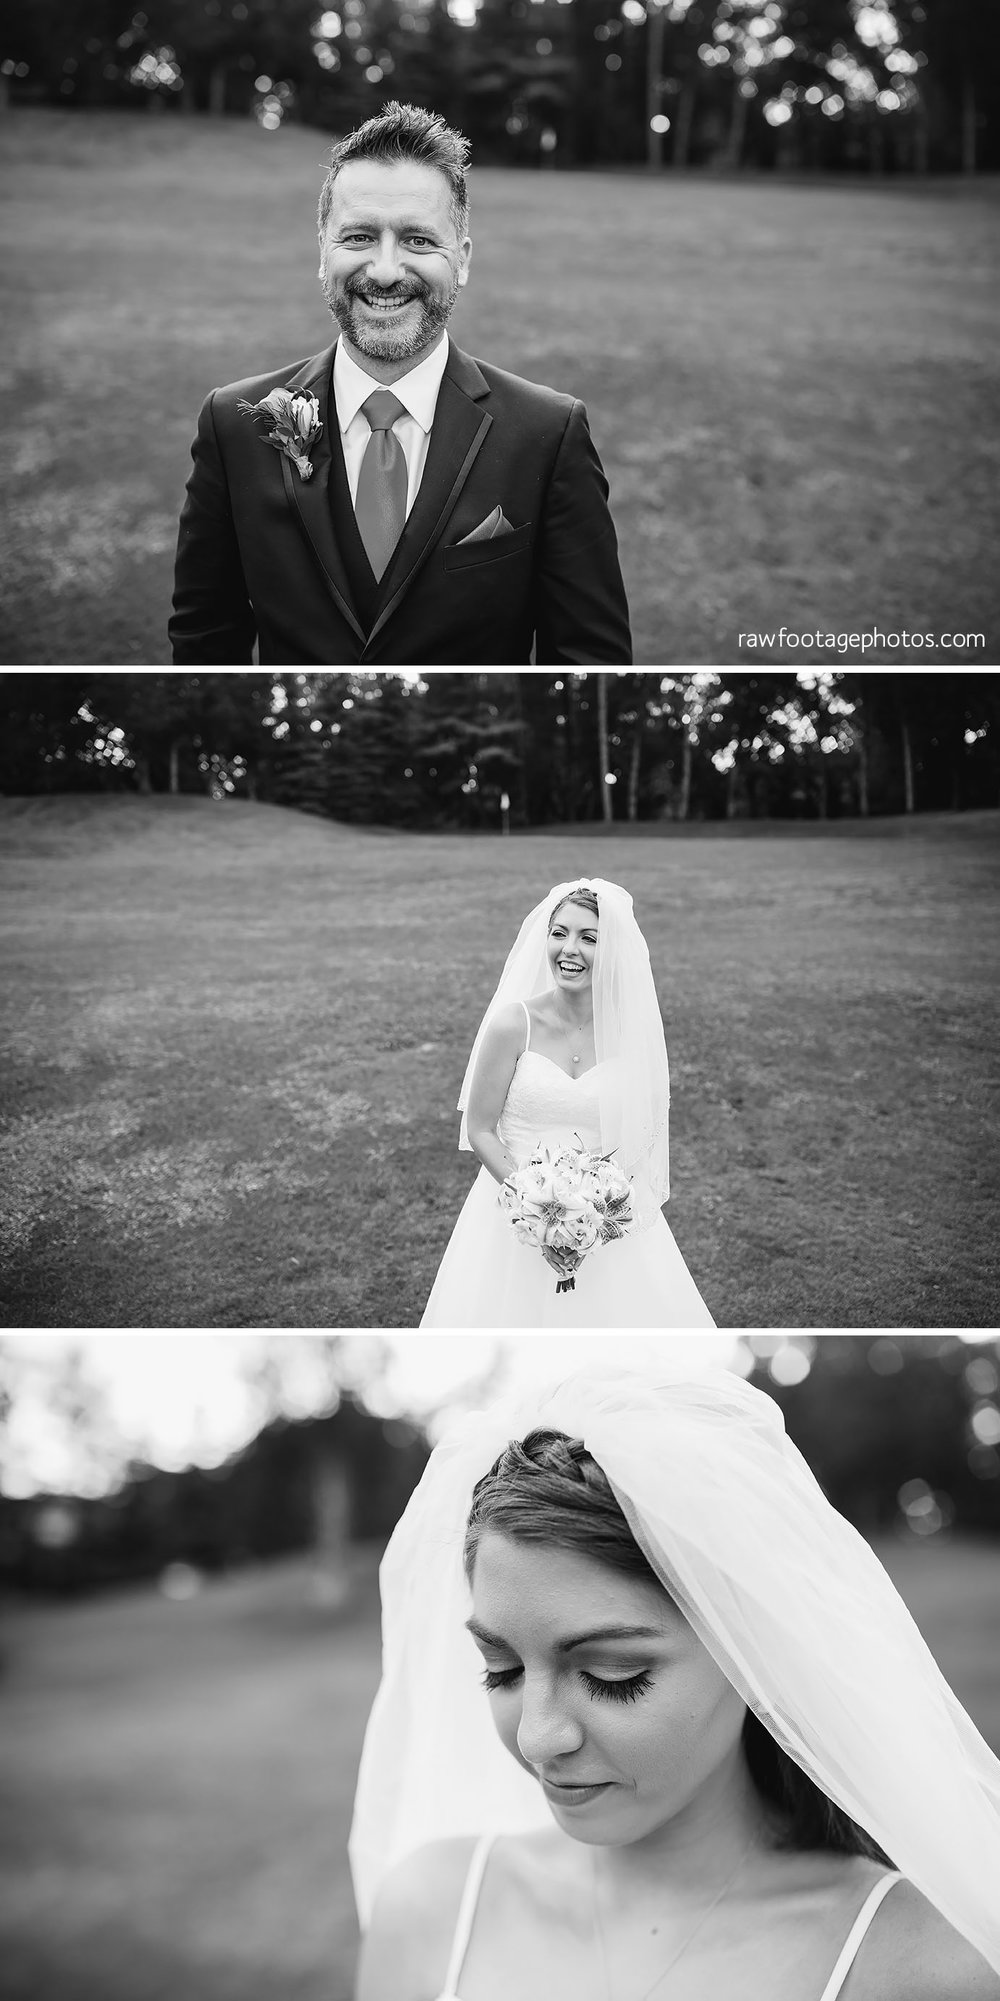 Rainy Wedding Portraits at Oakwood Resort